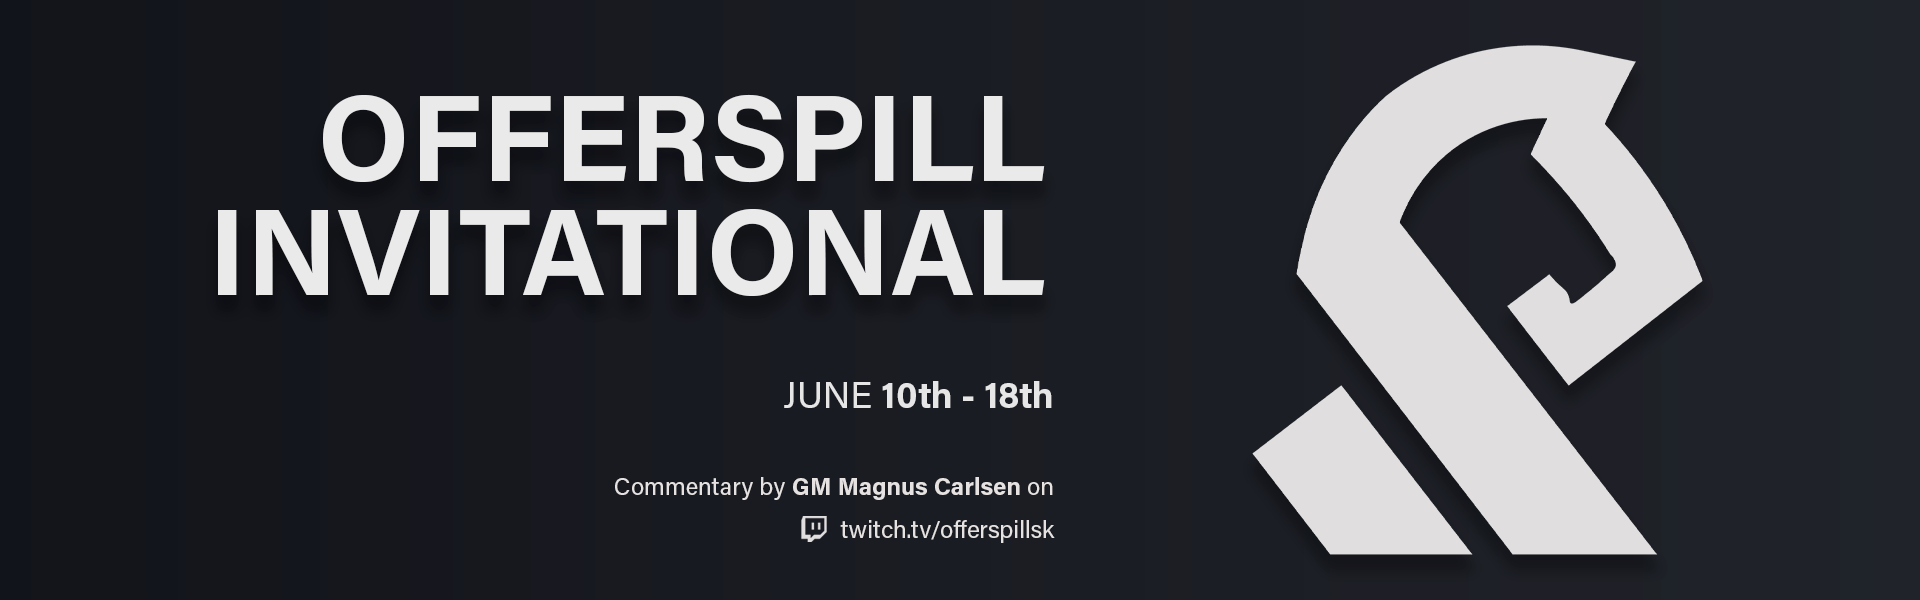 Offerspill Invitational